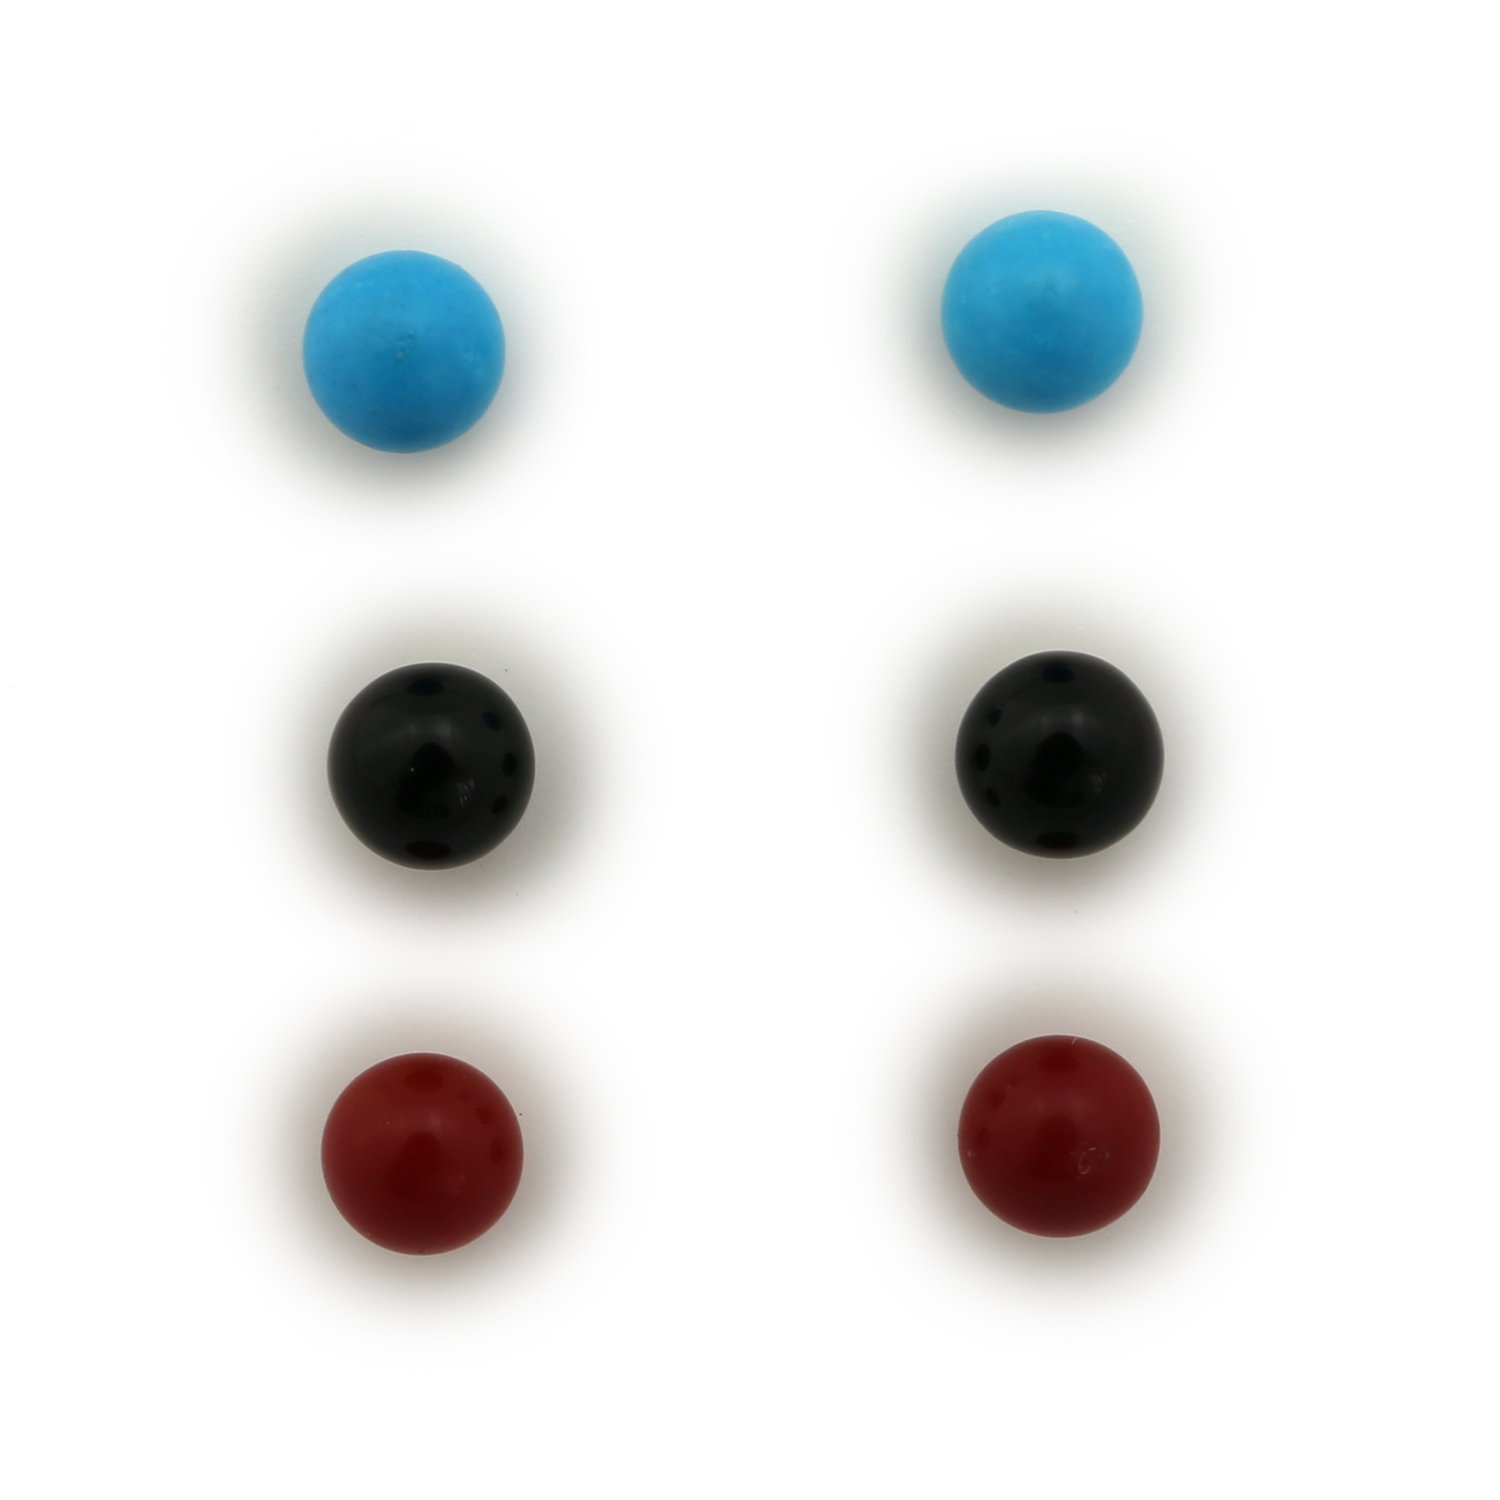 14k Yellow or White Gold 5mm Simulated Turquoise, Simulated Coral and Onyx Ball Stud Earrings Set by